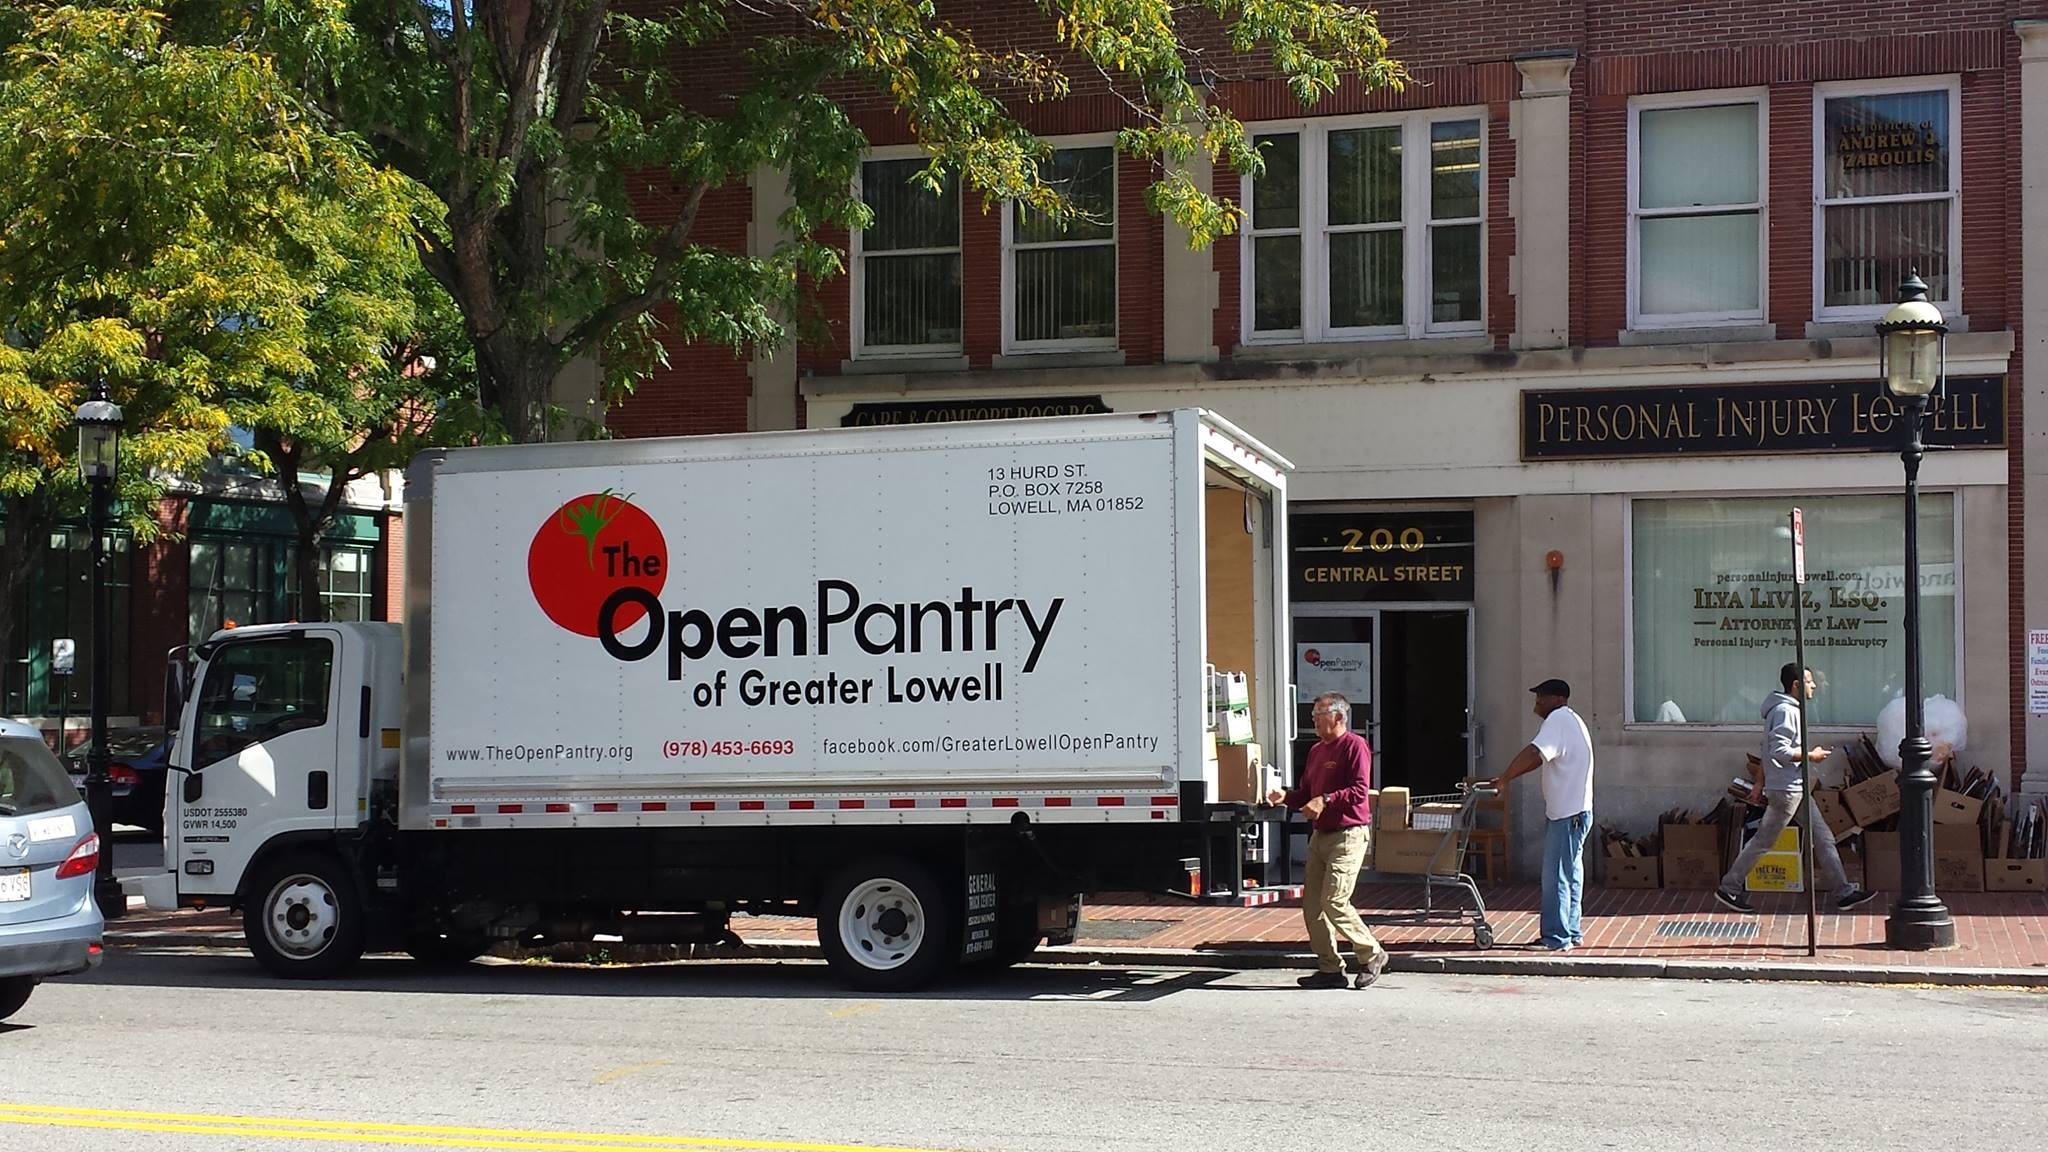 Open Pantry of Greater Lowell